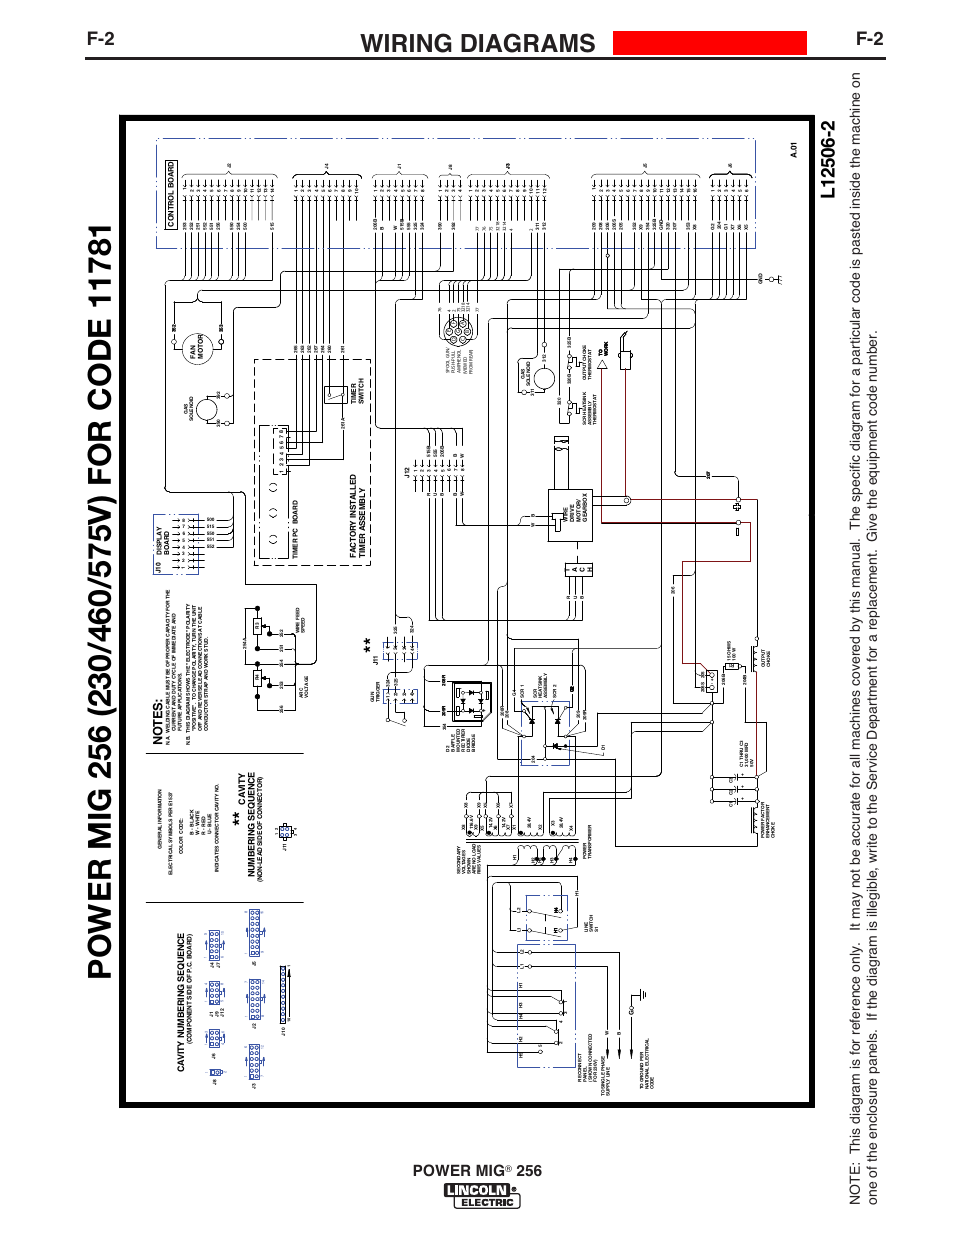 wiring diagrams  enhanced diagram  power mig